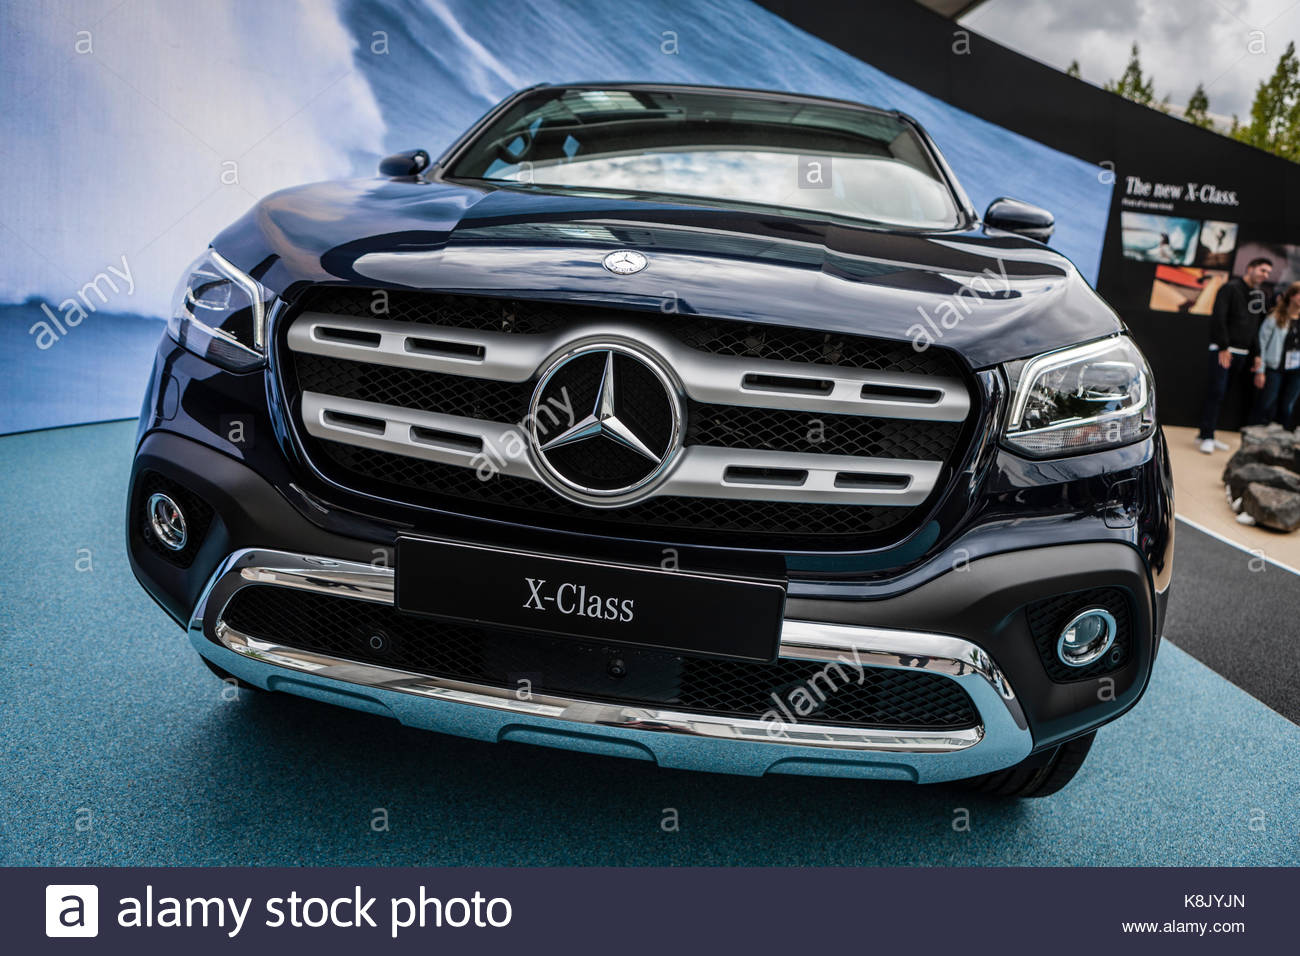 mercedes benz x 250 d 4matic pick up truck at iaa 2017 car stock photo royalty free image. Black Bedroom Furniture Sets. Home Design Ideas